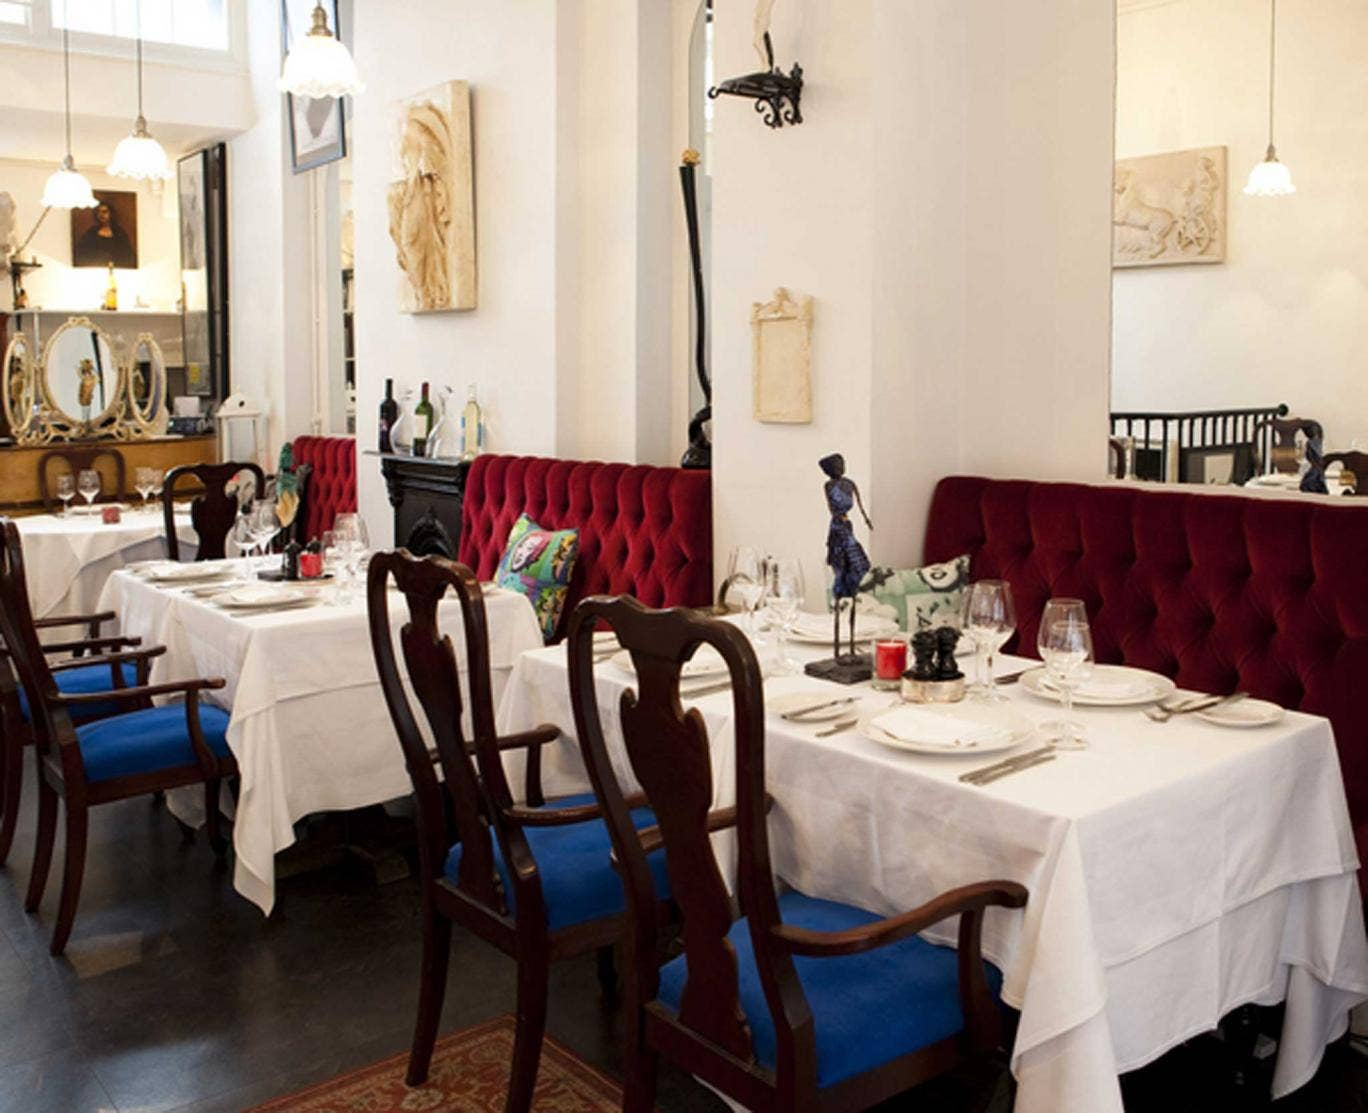 French connection: Otto's is a decent lunch spot for the lawyers of Clerkenwell, or a romantic treat for the refined palates of the ITN media types